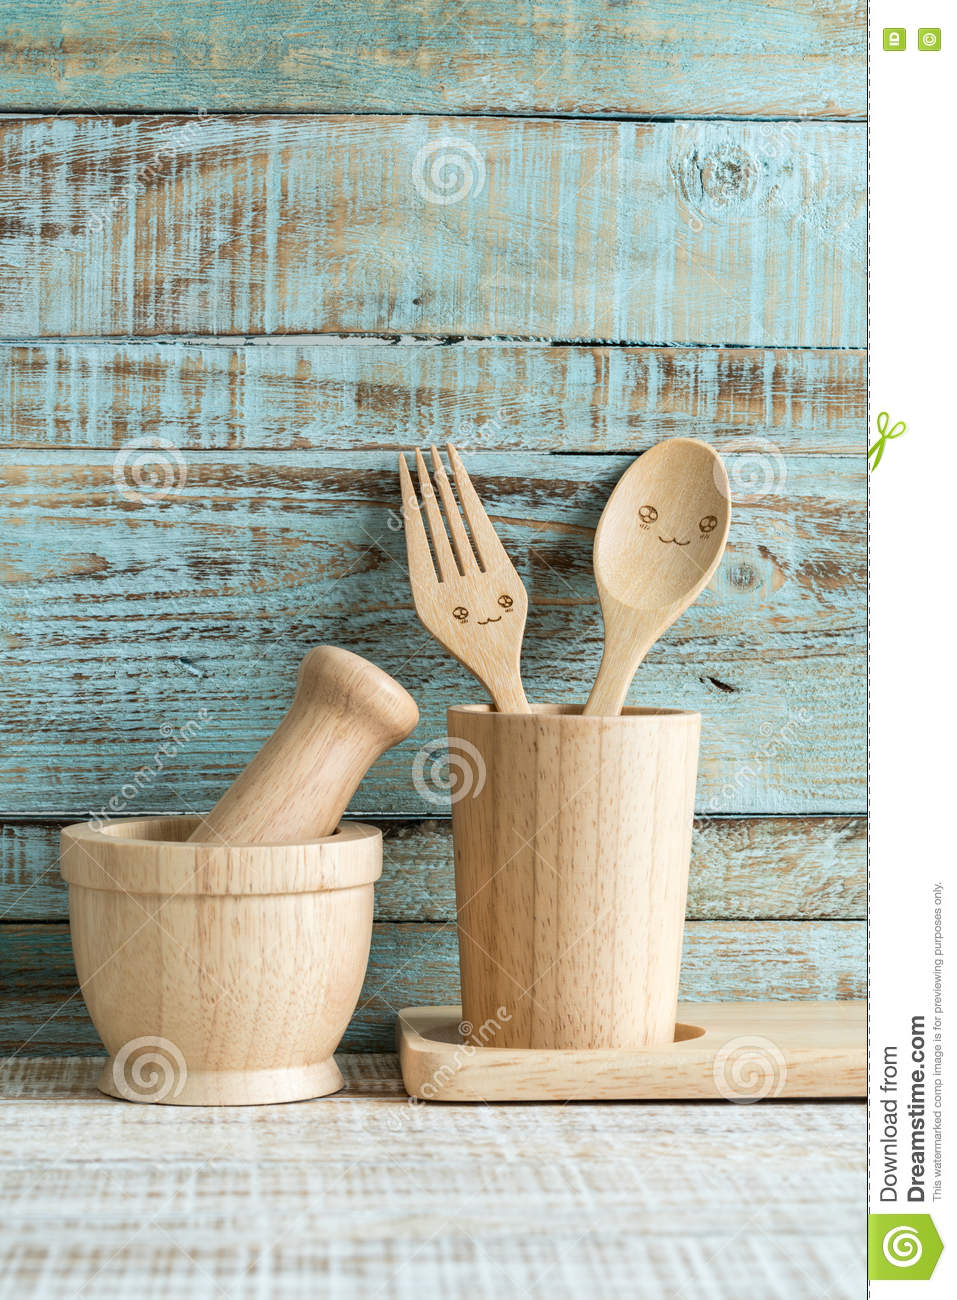 Kitchen Cooking Utensils In Storage On The Wood Background Stock ...